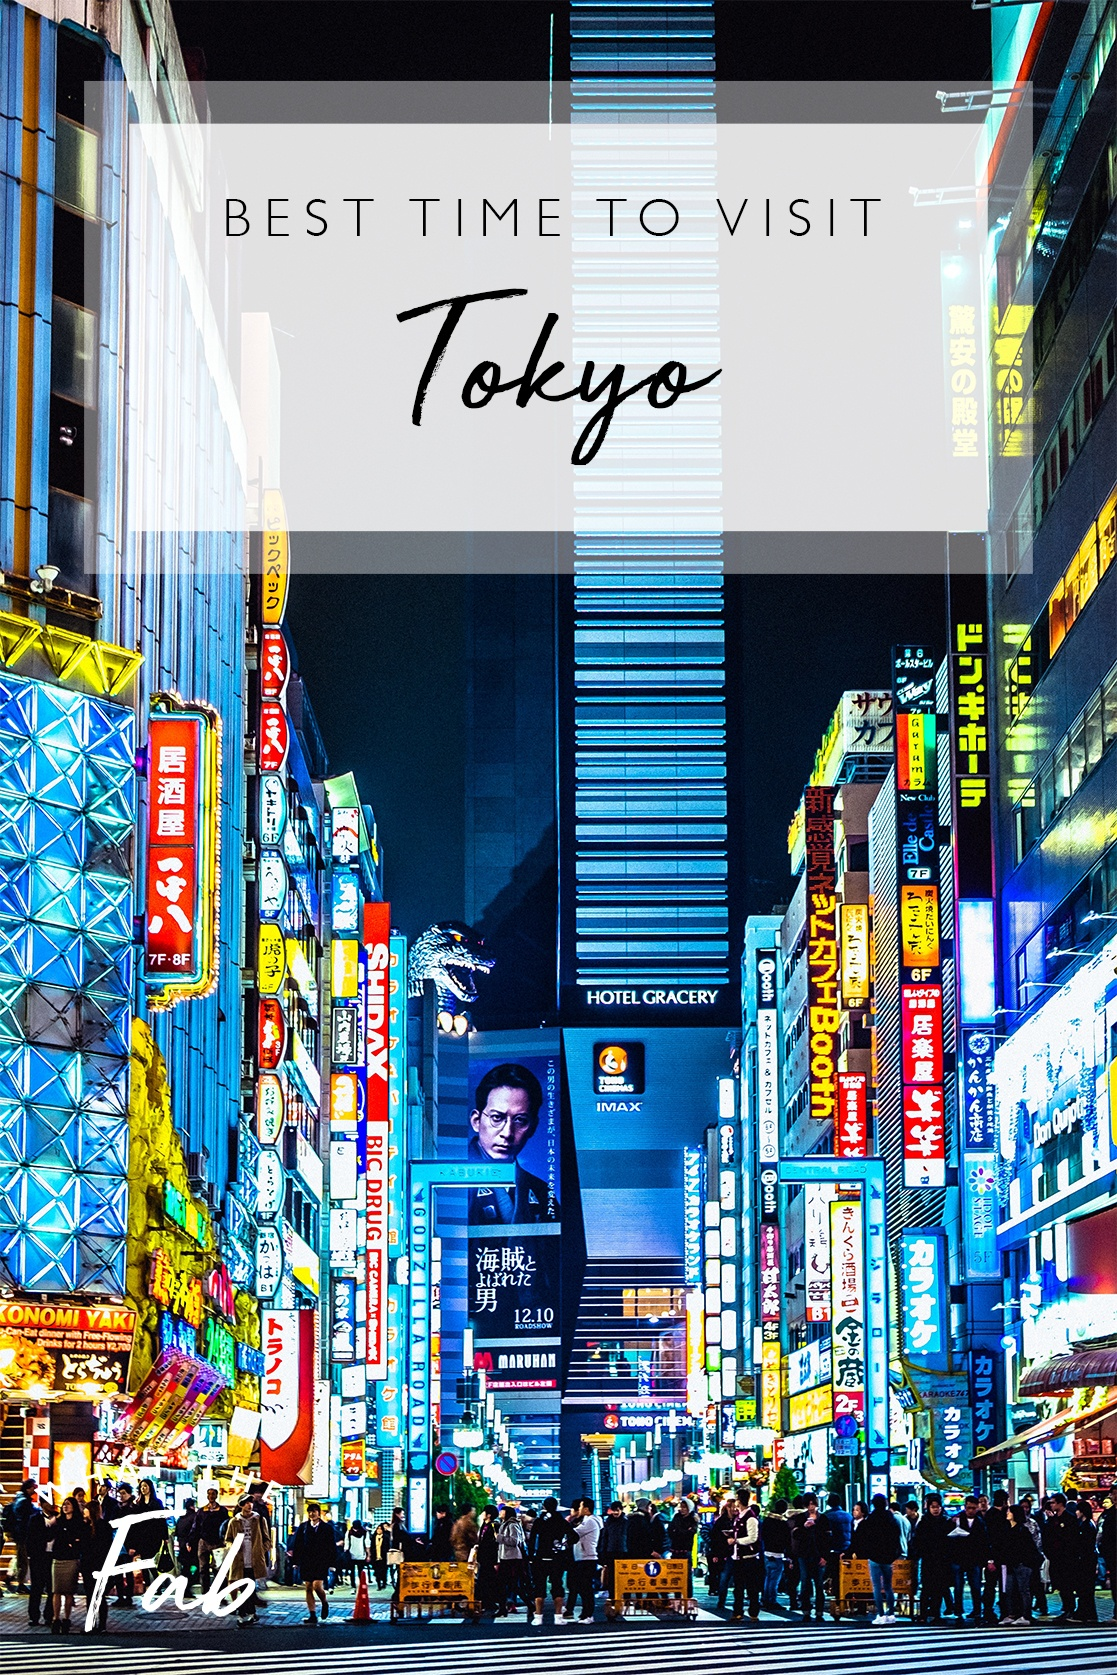 The best time to visit Tokyo, by travel blogger What The Fab